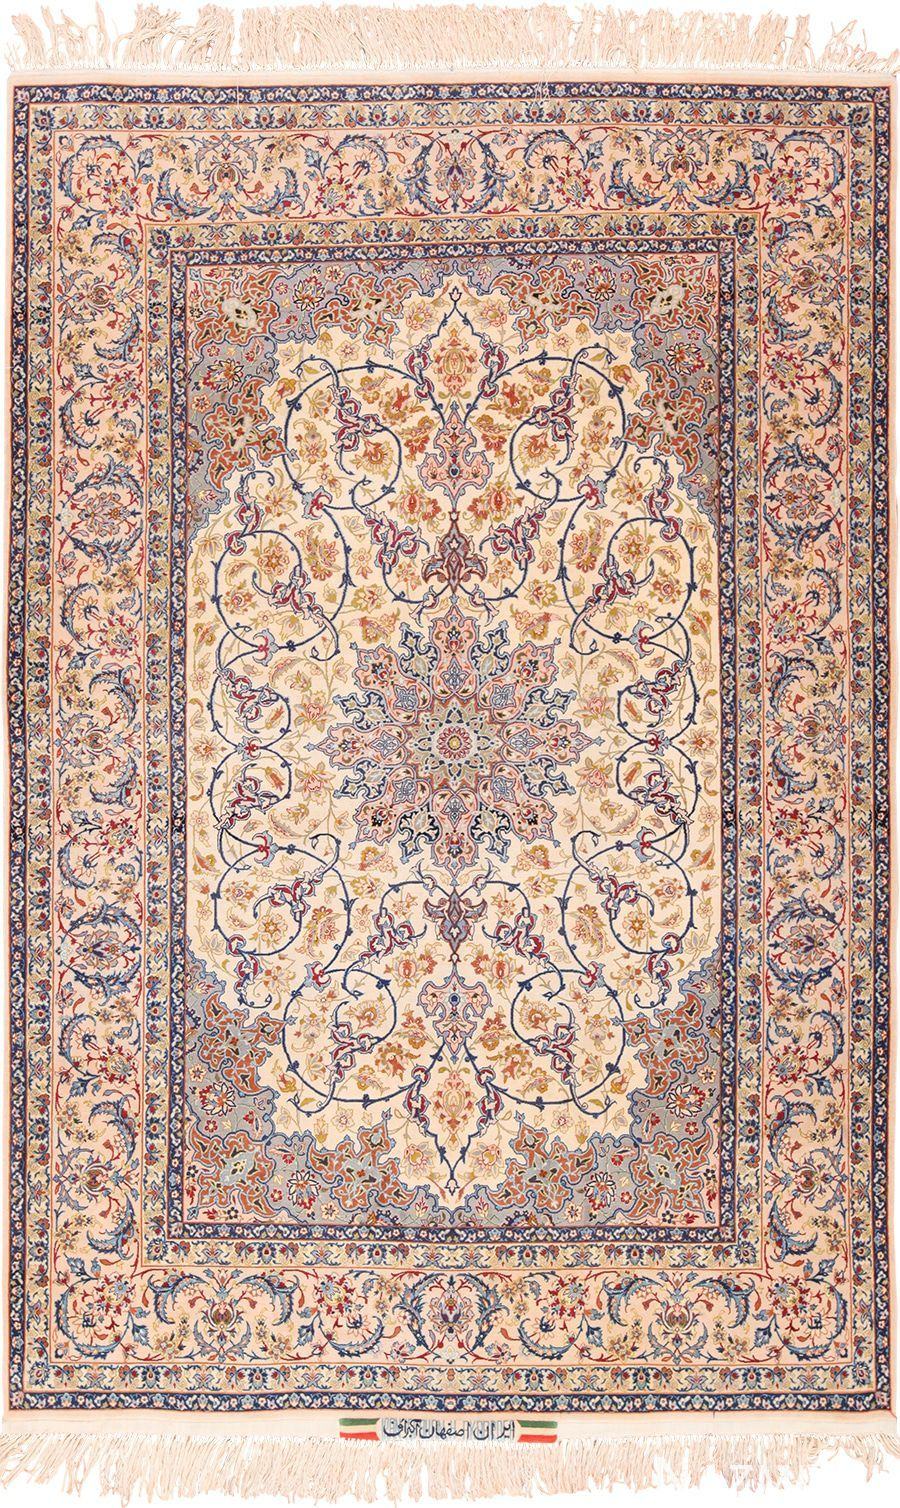 Ivory Background Vintage Persian Isfahan Rug 49599 By Nazmiyal Vintage Persian Rug Persian Rug Designs Traditional Persian Rugs